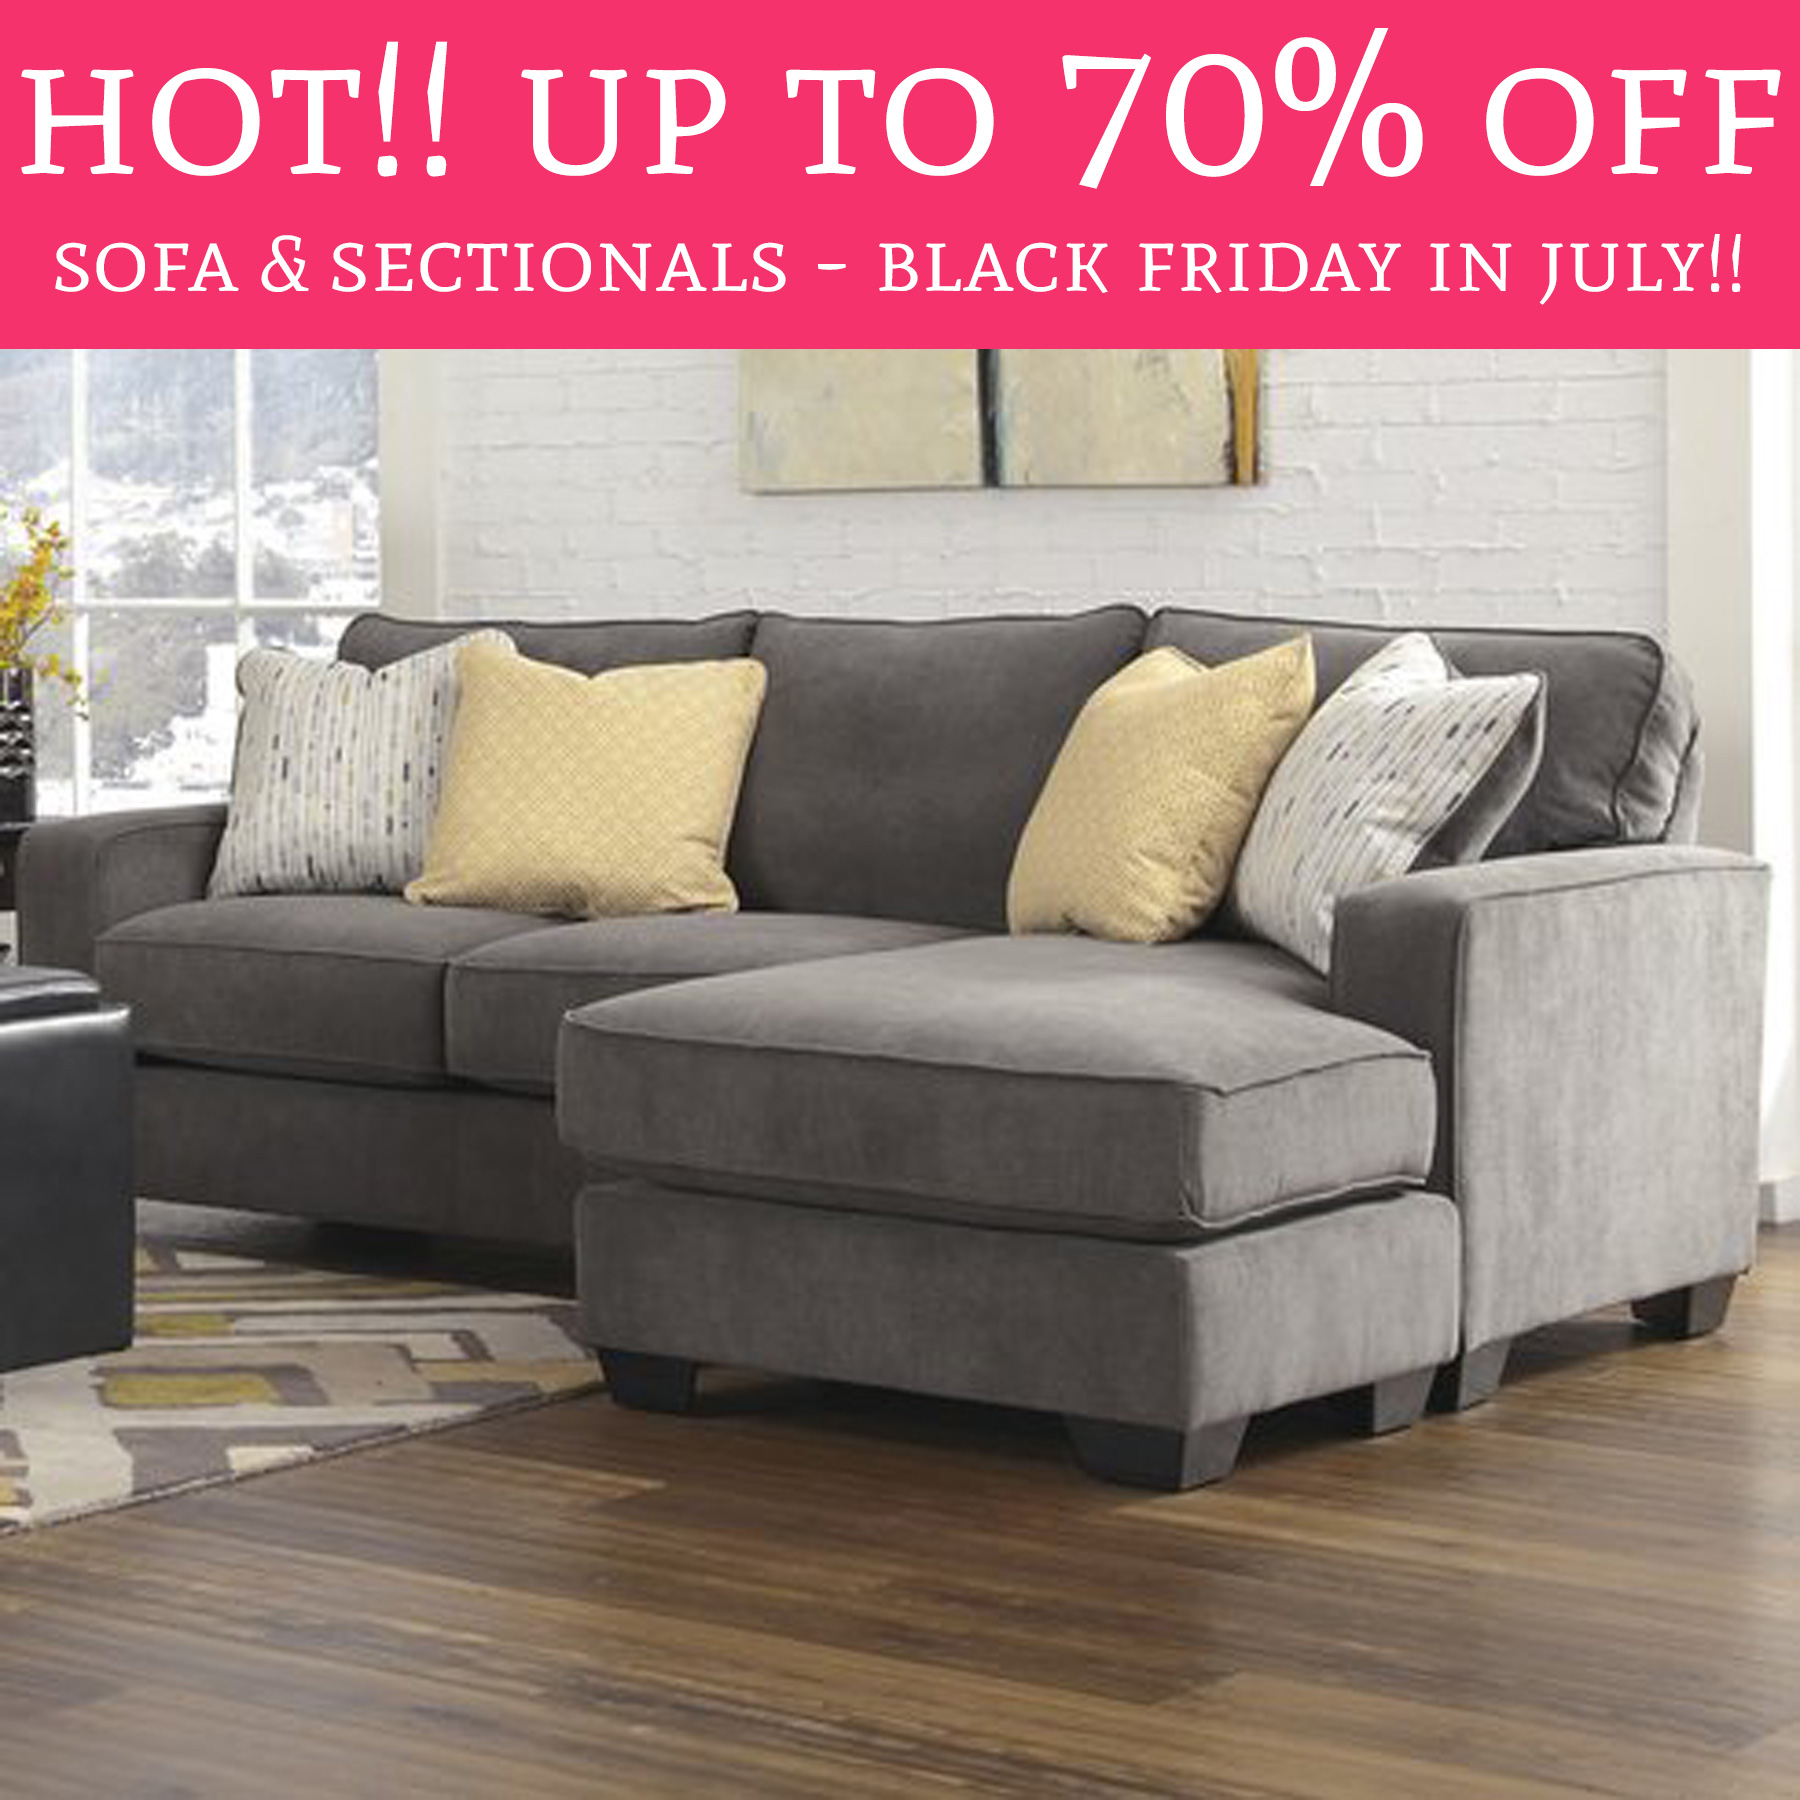 HOT Black Friday In July – Up To 70% f Sofa & Sectionals